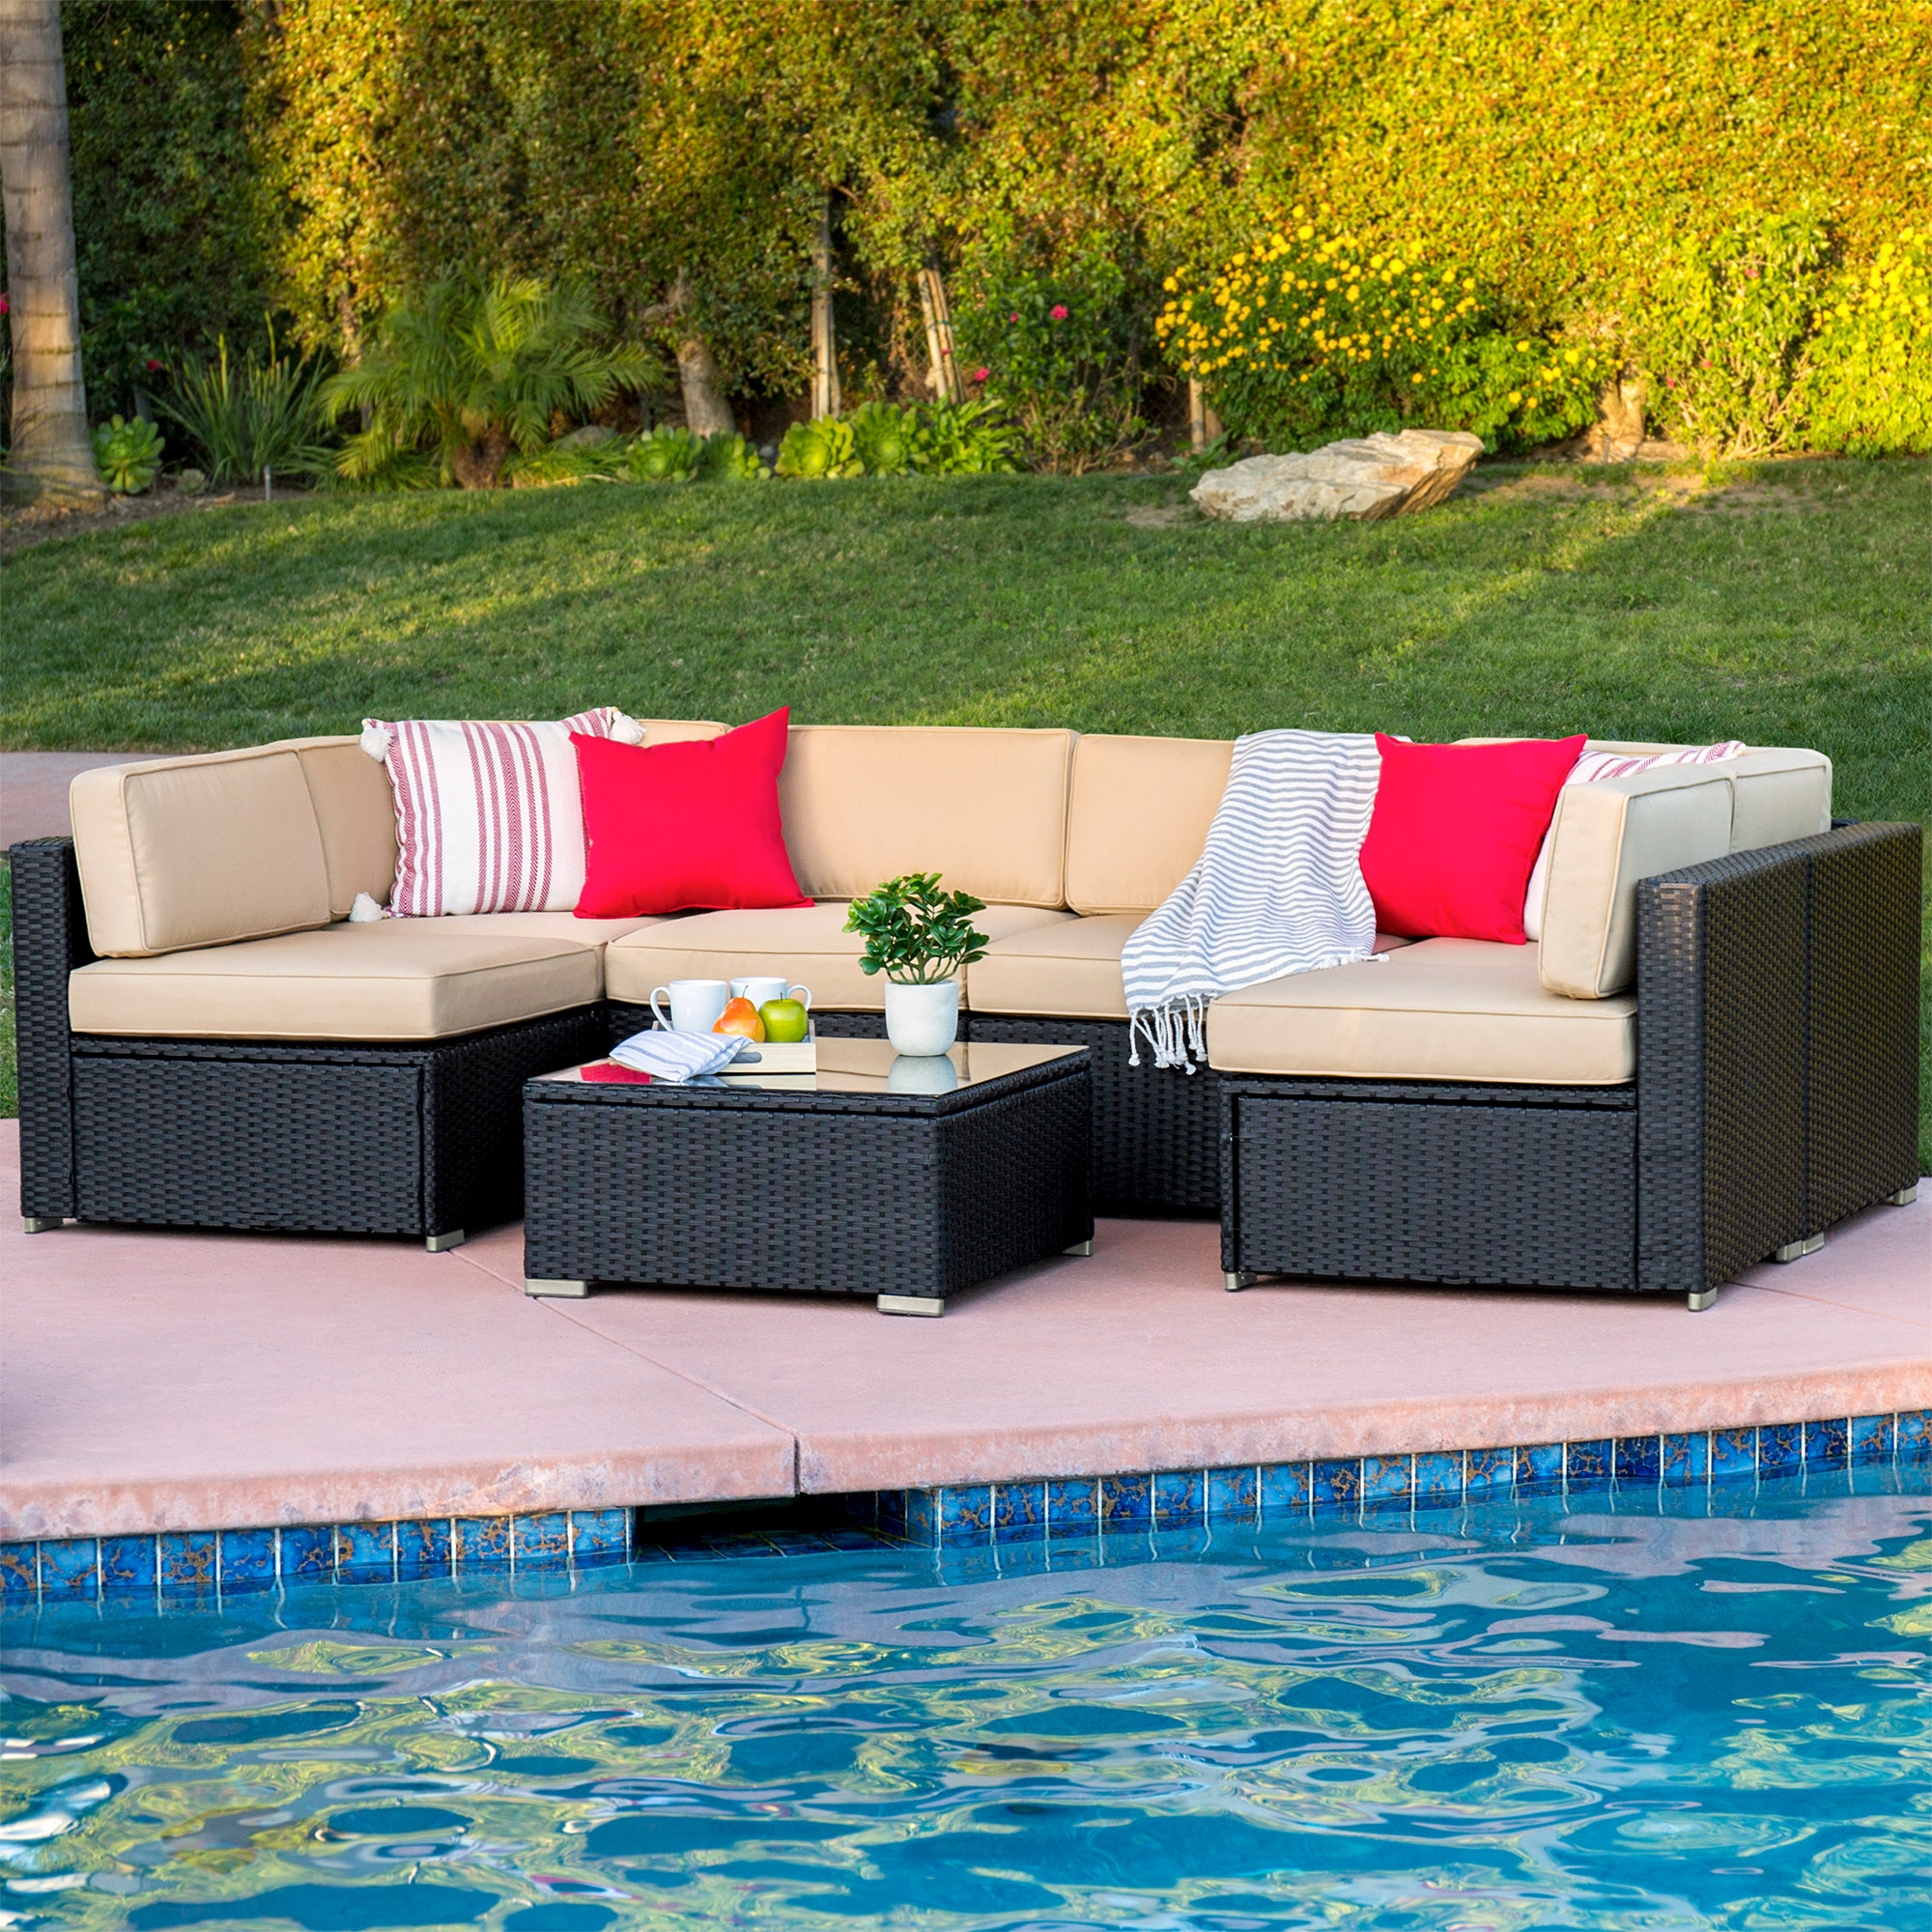 Charmant Best Choice Products 7pc Outdoor Patio Garden Wicker Furniture Rattan Sofa  Set